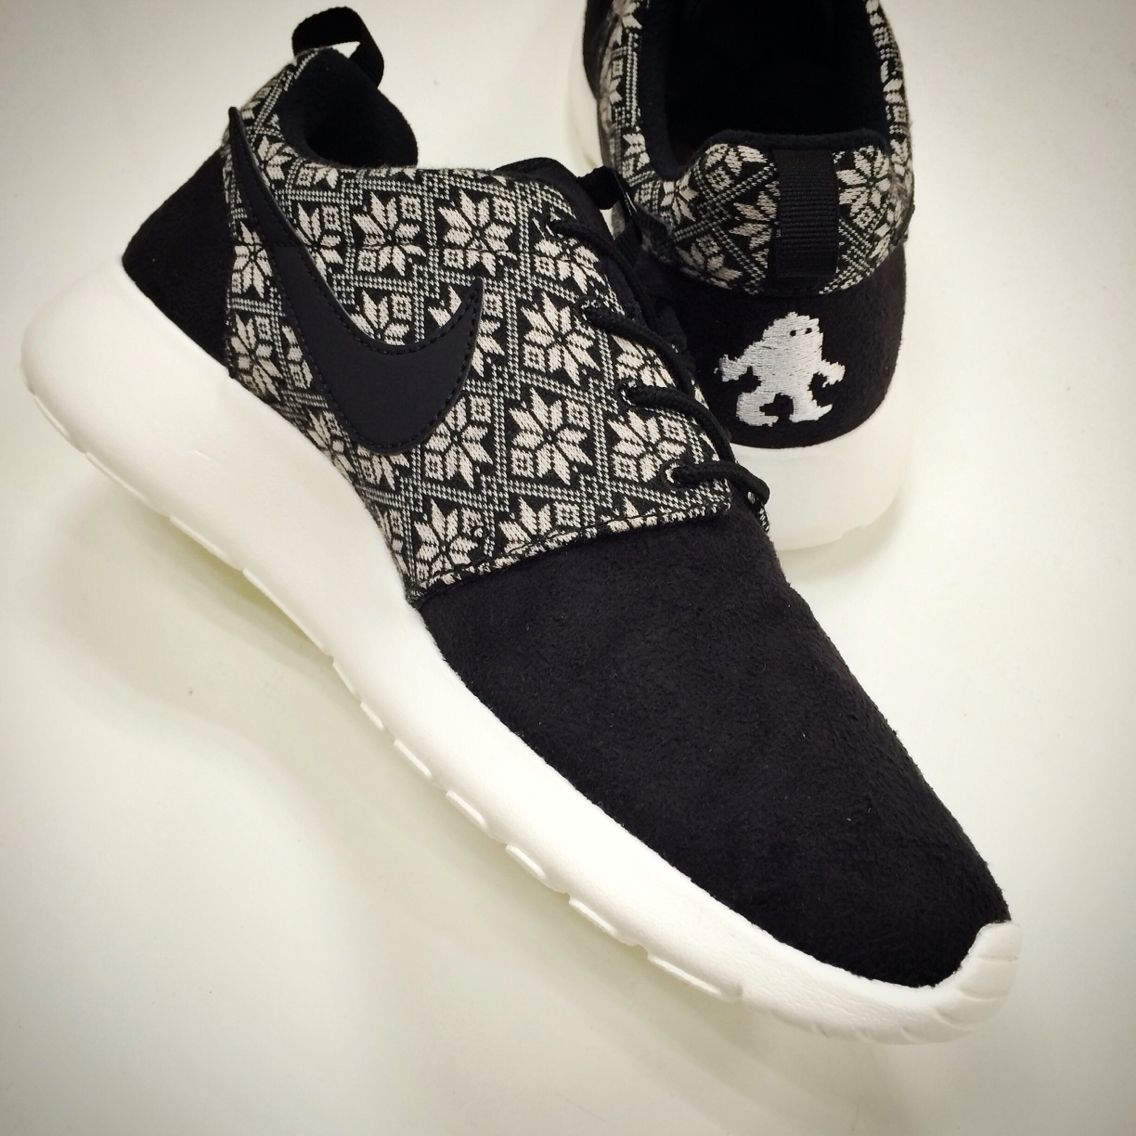 Watch out! The yeti want a Roshe one too. #Nike #nsw #Roshe